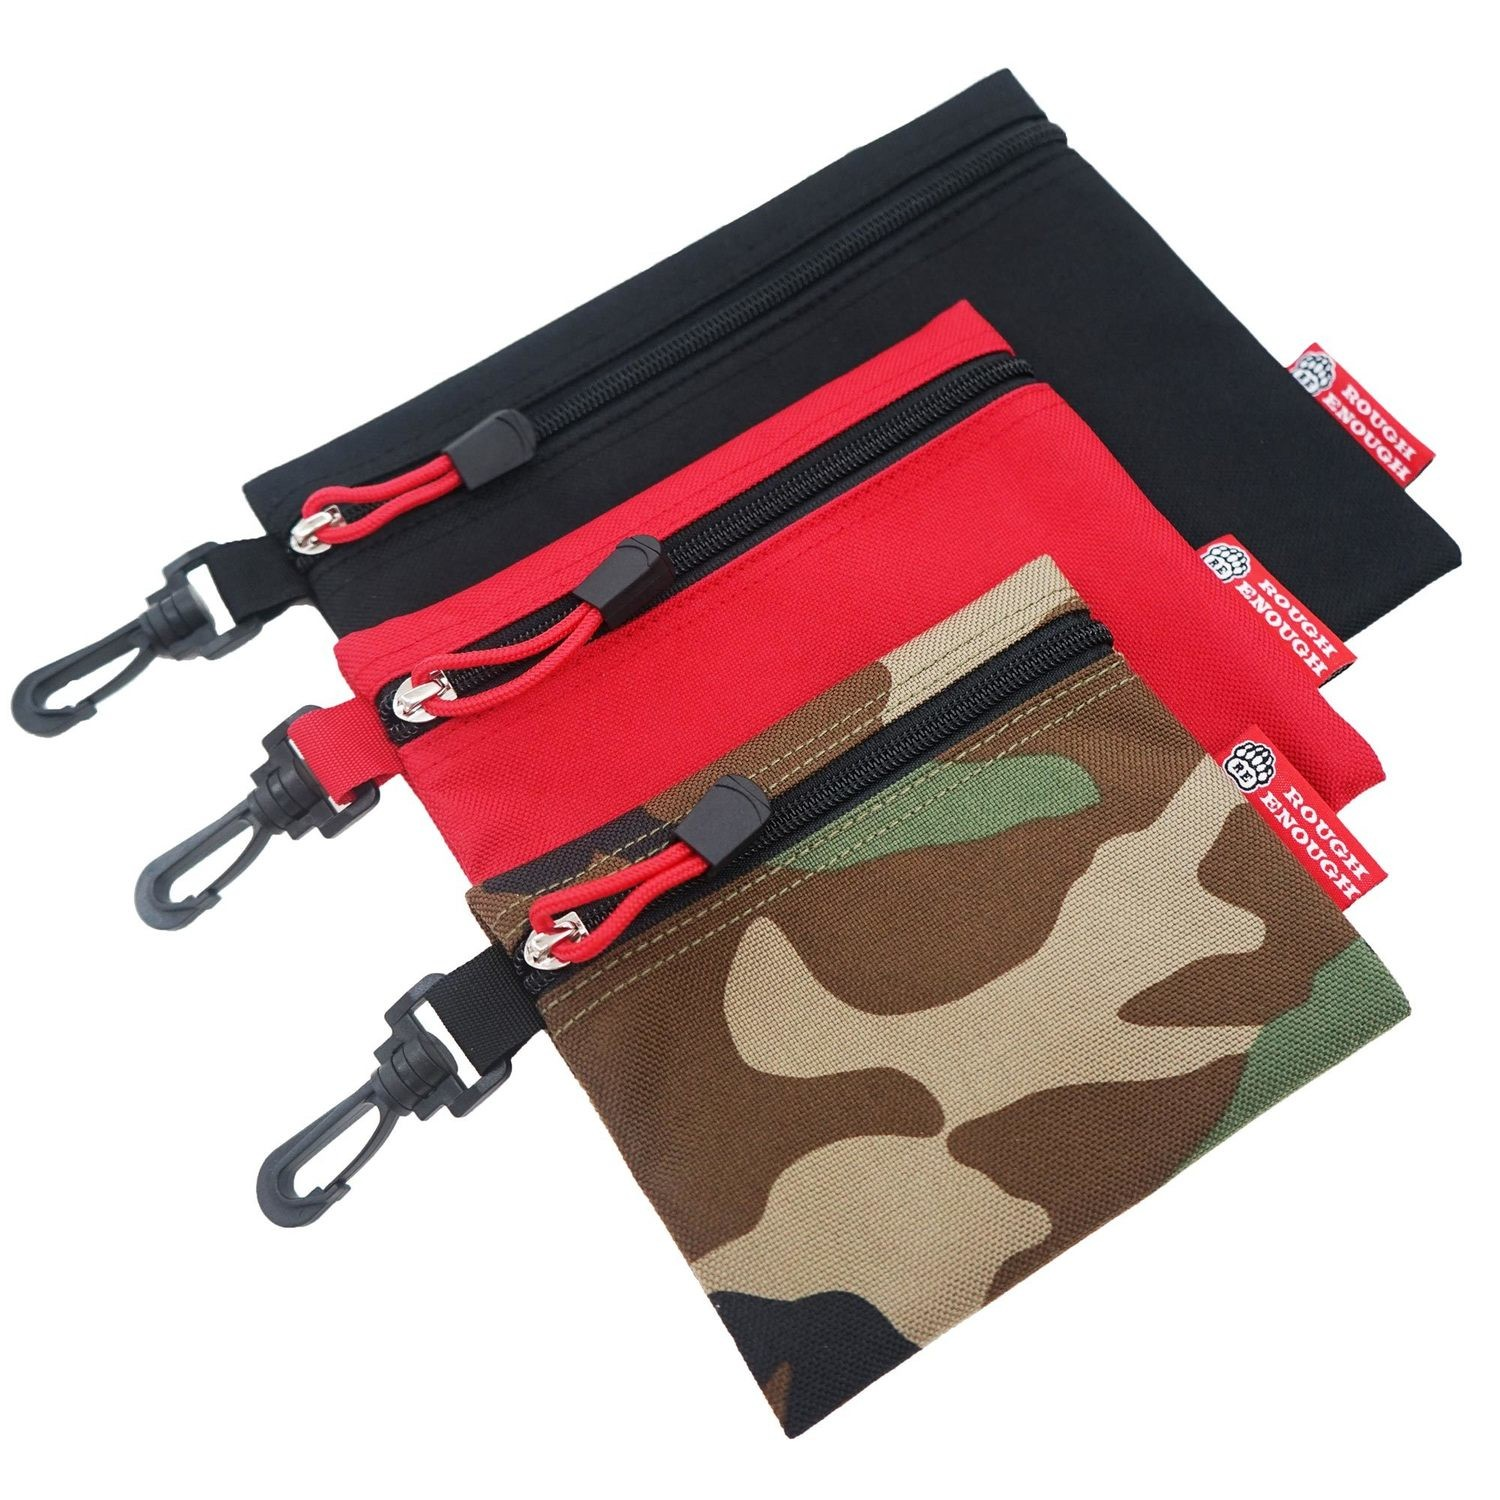 RE8042 Small Tool Bag Pouch Organizer EDC Zipper Pouch 3 in 1 Set